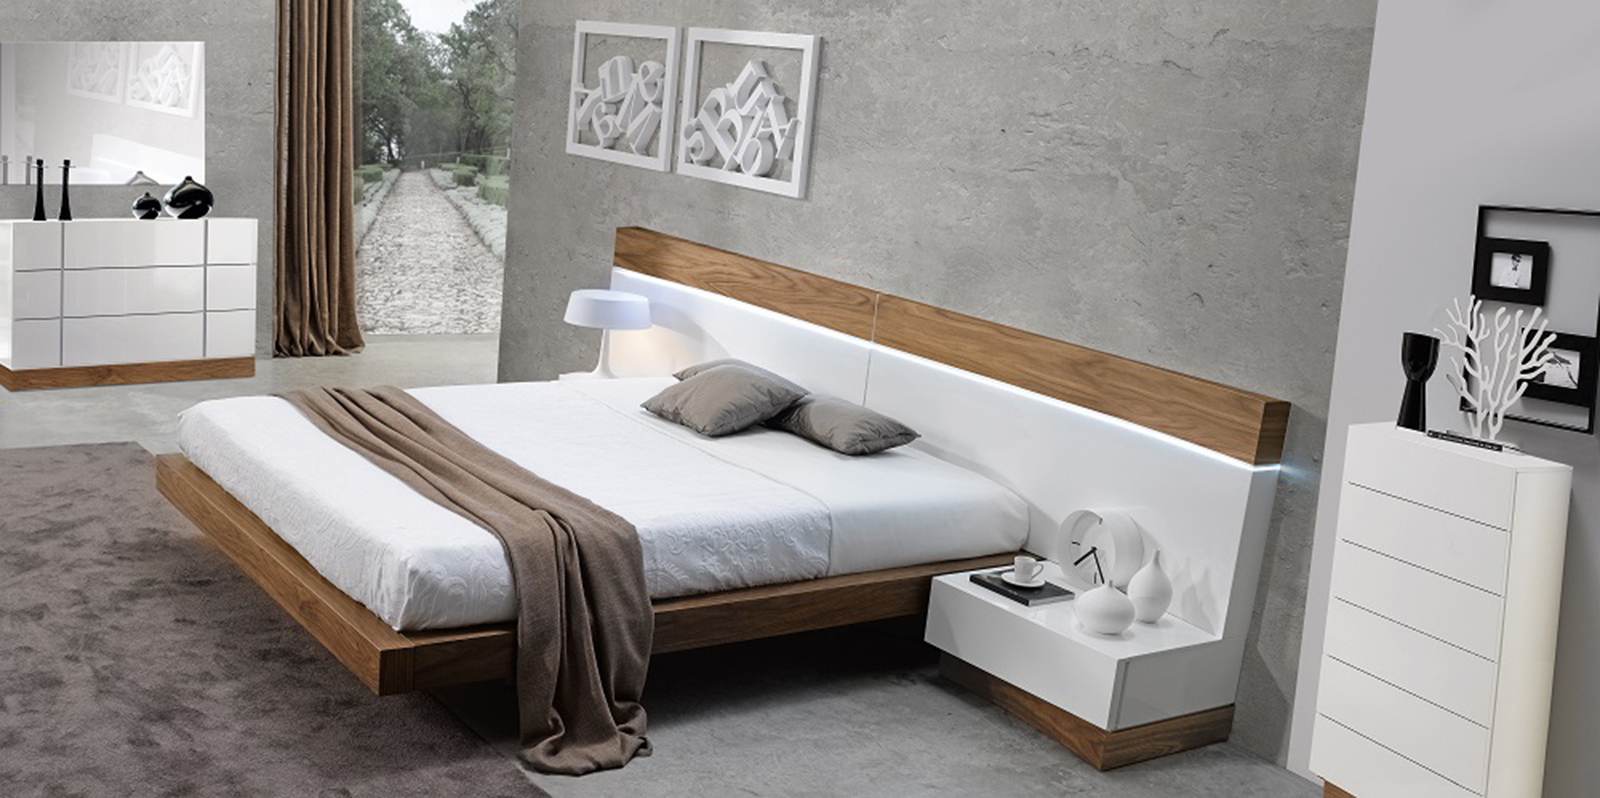 The Sleekness And Stability Of A King Platform Bed Is Ideal For A Modern  Bedroom